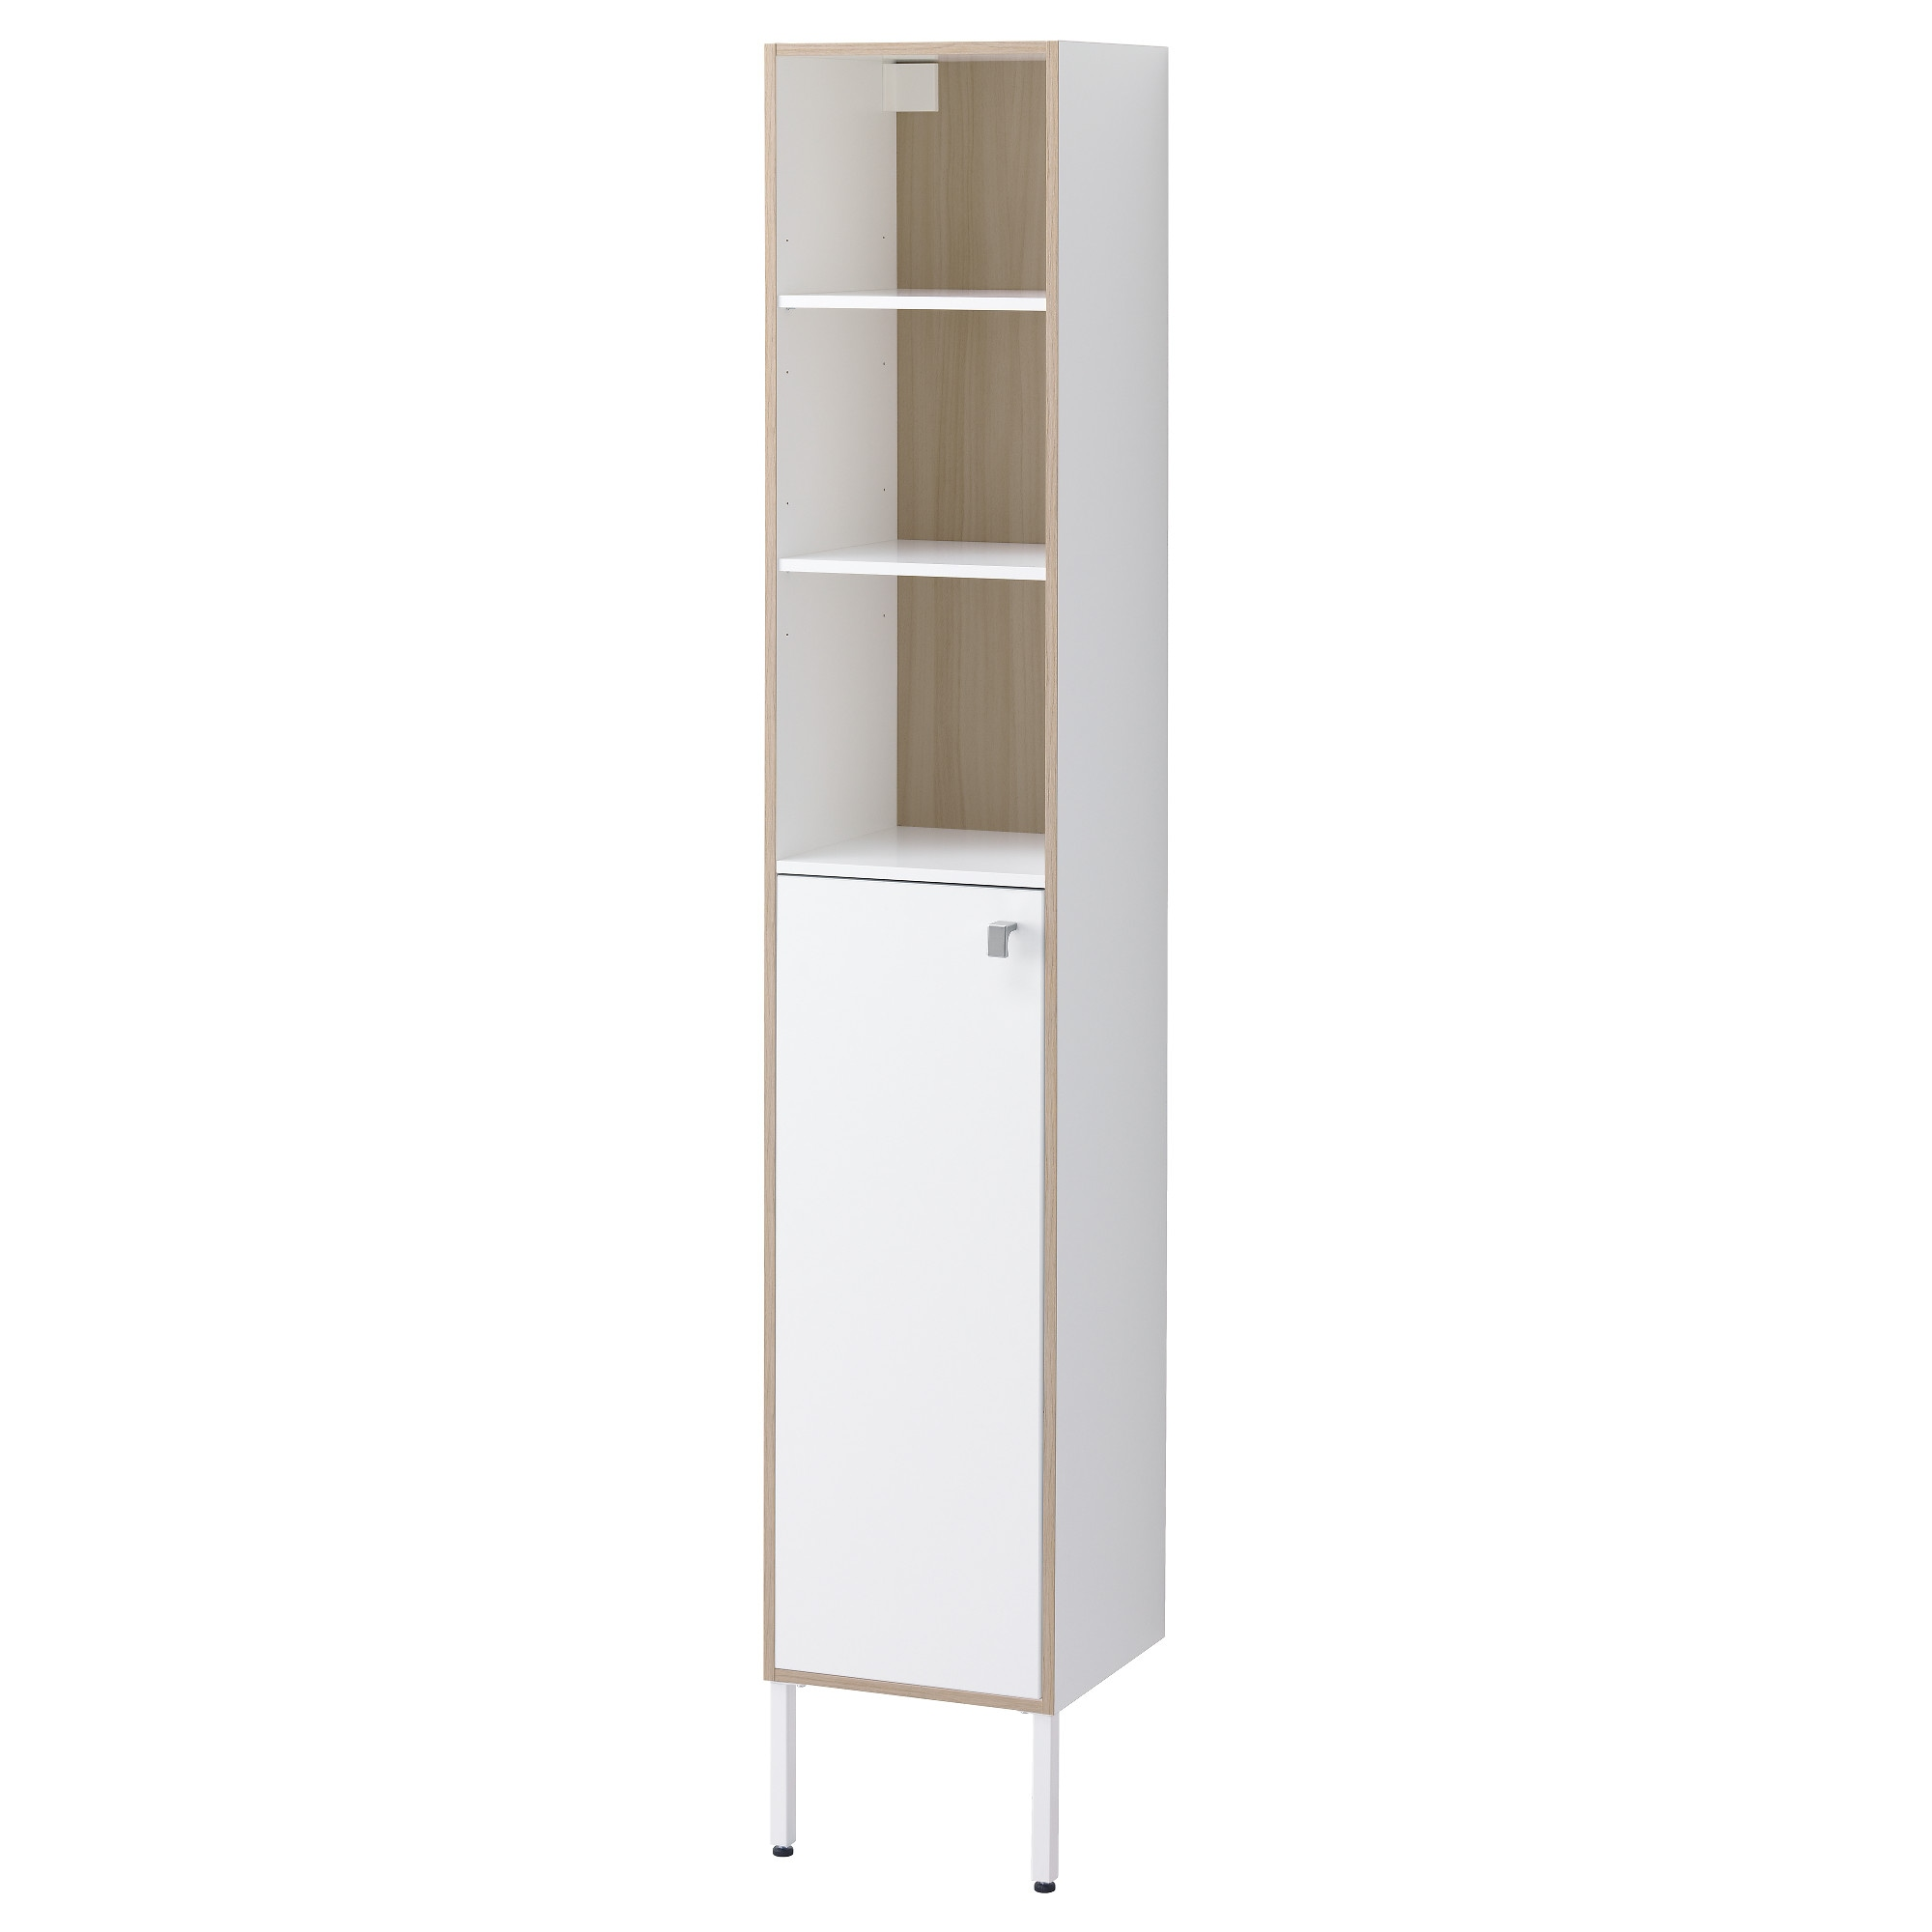 tyngen high cabinet white ash effect width 11 34 depth - Bathroom Cabinets Tall